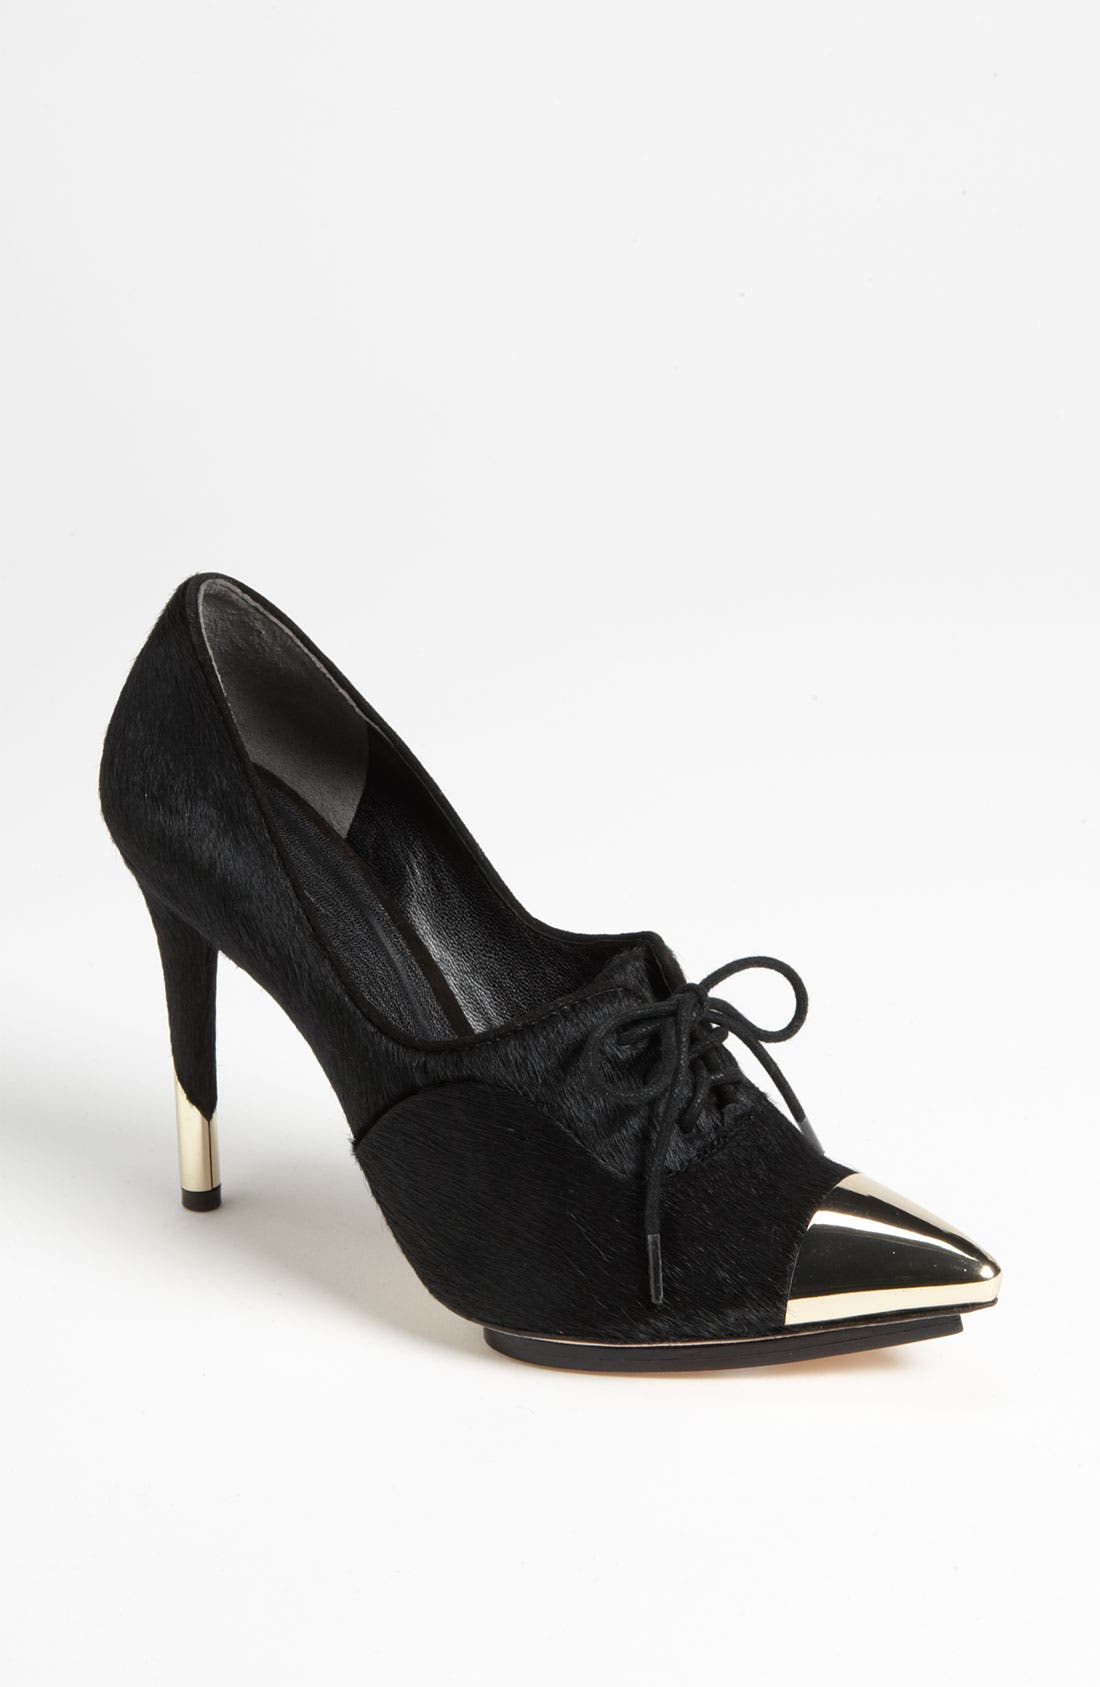 Alternate Image 1 Selected - Rachel Roy 'Bette' Pump